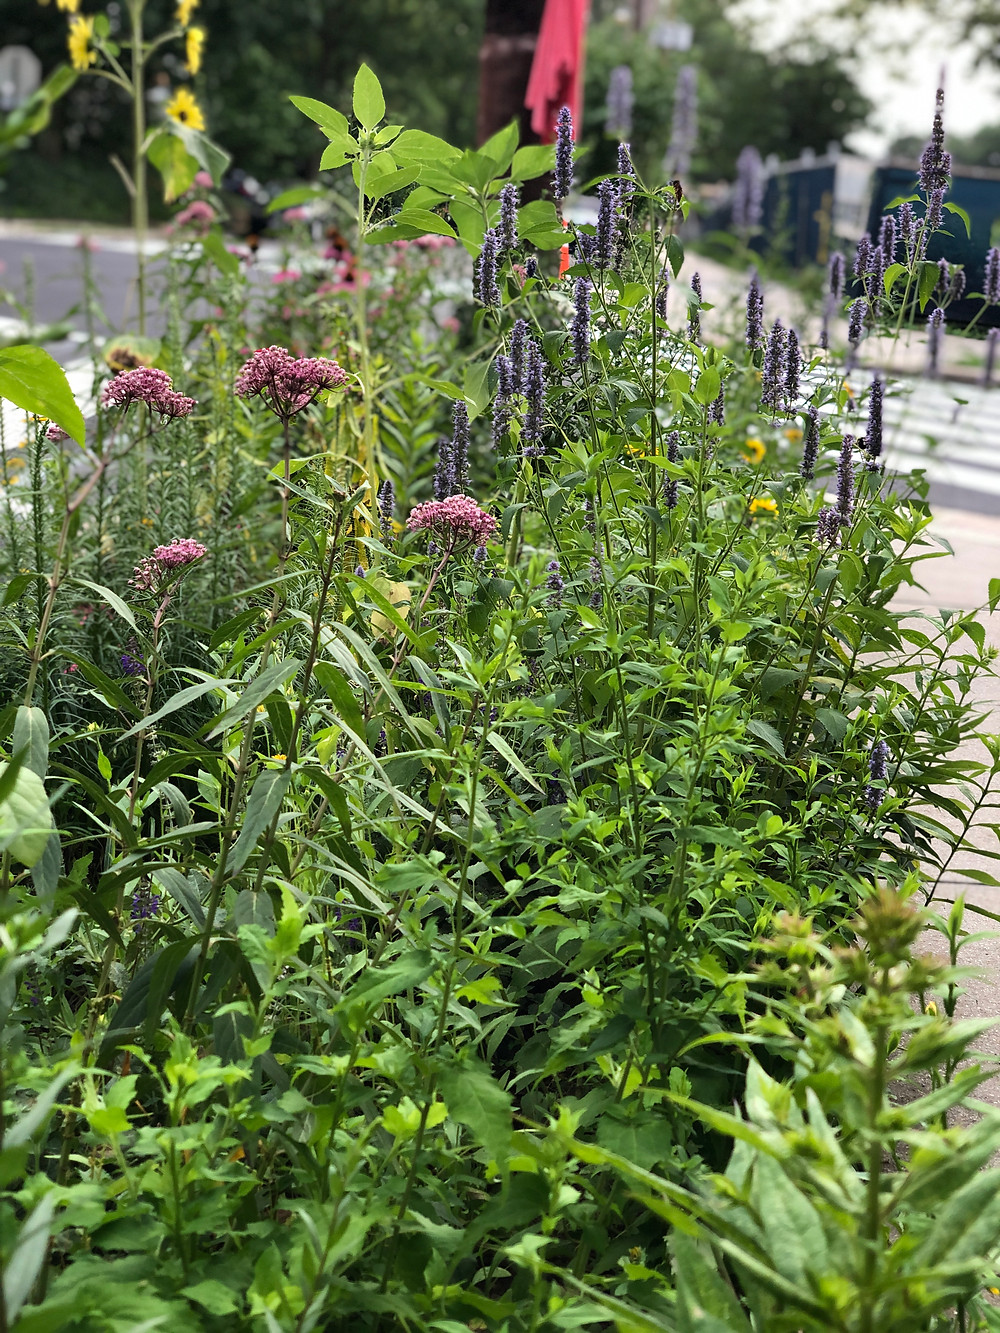 swamp milkweed and agastache in tree lawn